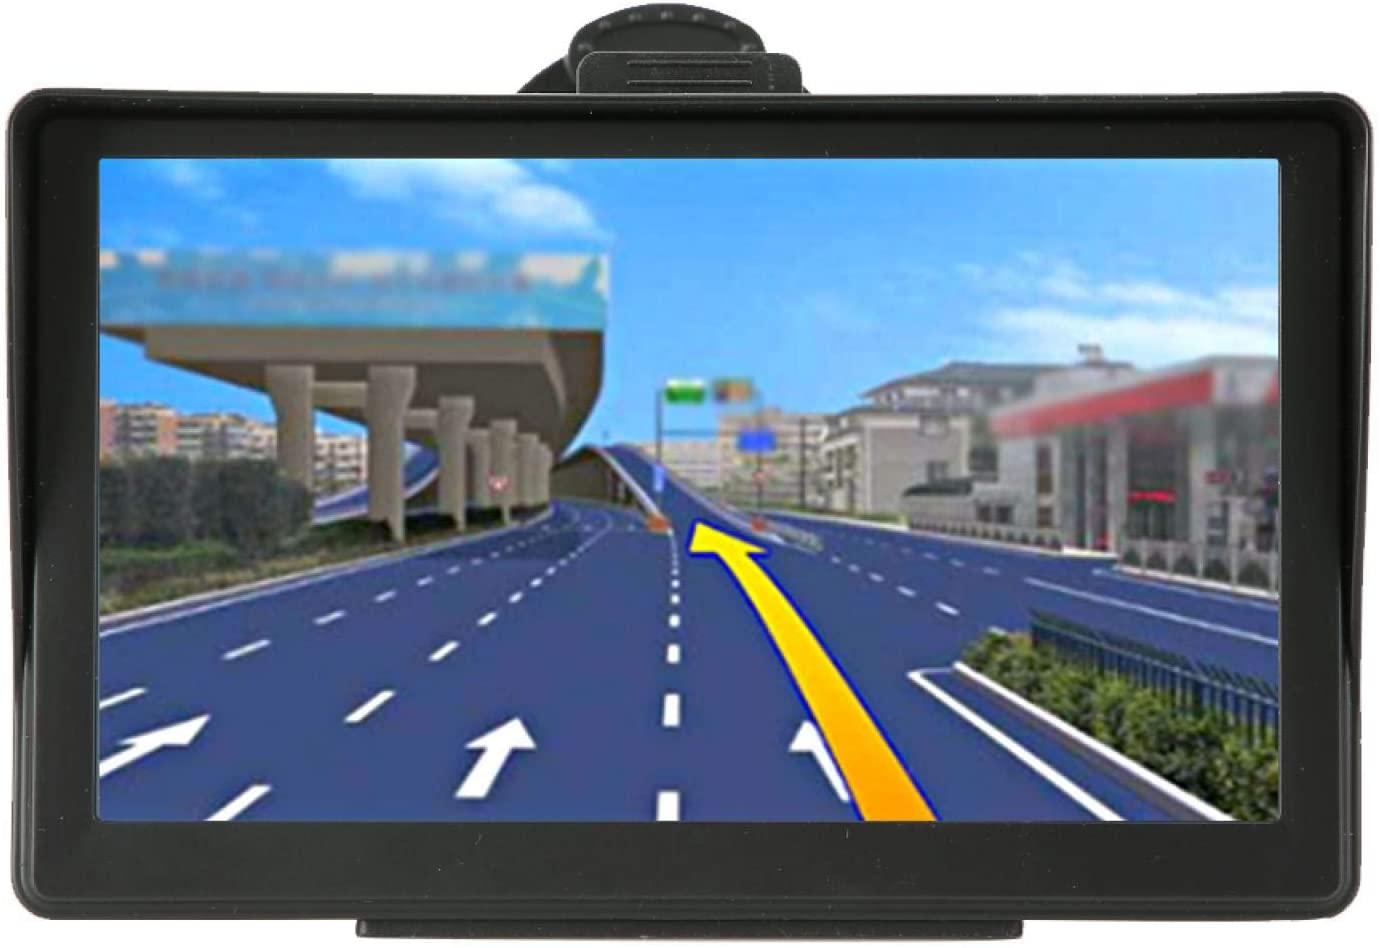 ASIXXSIX VOICE GPS GPS NAVIGATION TOUCH SCREEN LIGHTWEIGHT REAL VOICE FOR TOLL ROADS UNPAVED ROADS FERRIES GENERAL PURPOSE